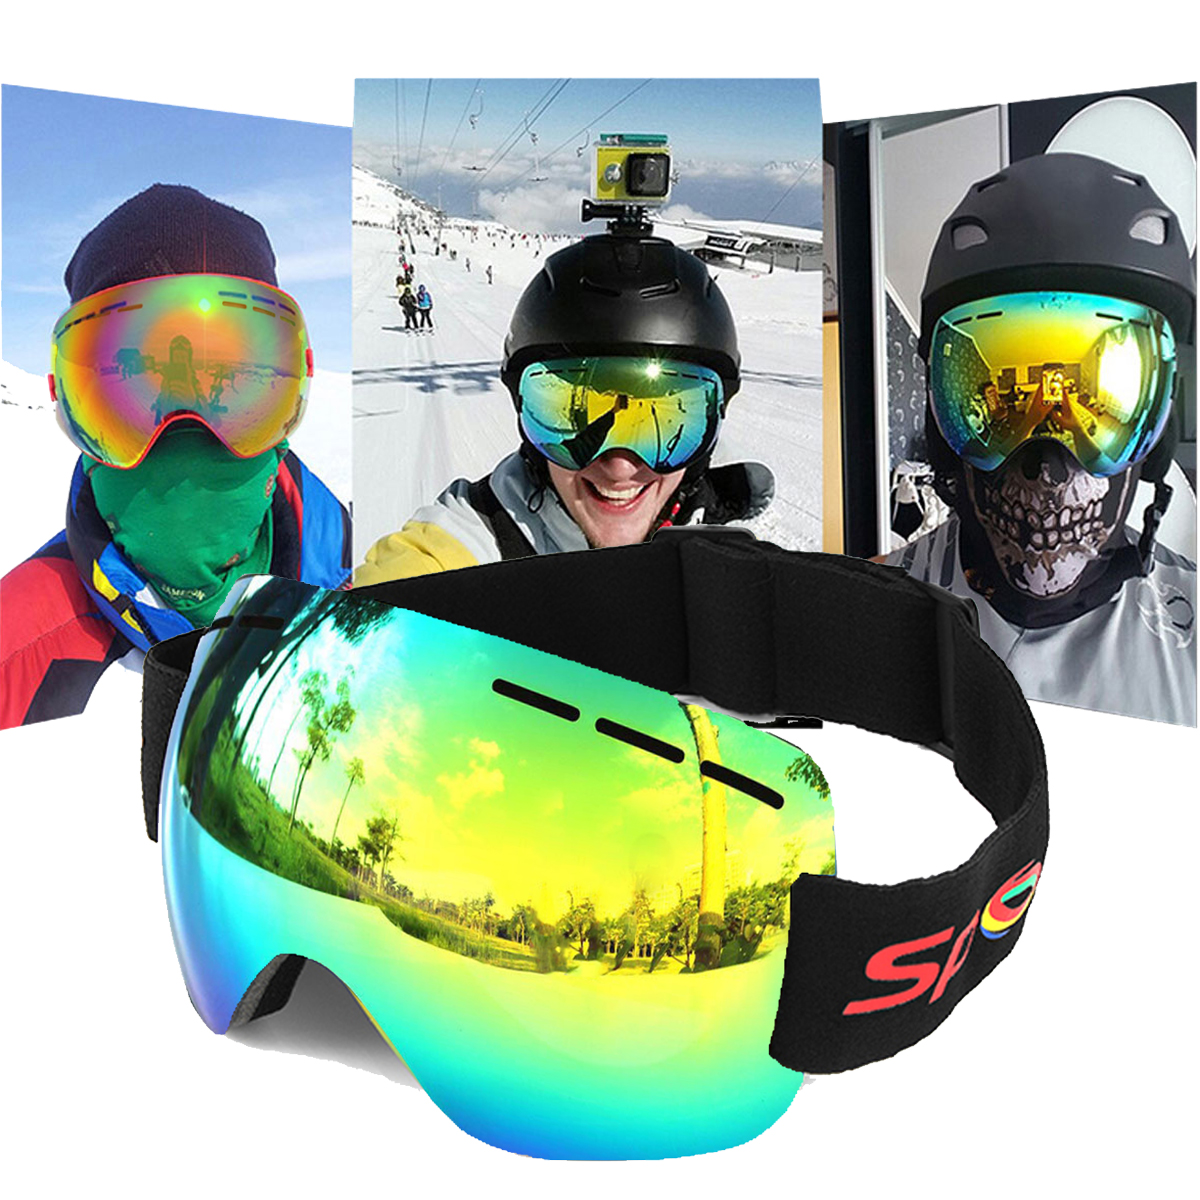 Motorcycle Goggles Anti-fog UV Skiing Snowboard Racing Sunglasses Snow Mirror Glasses